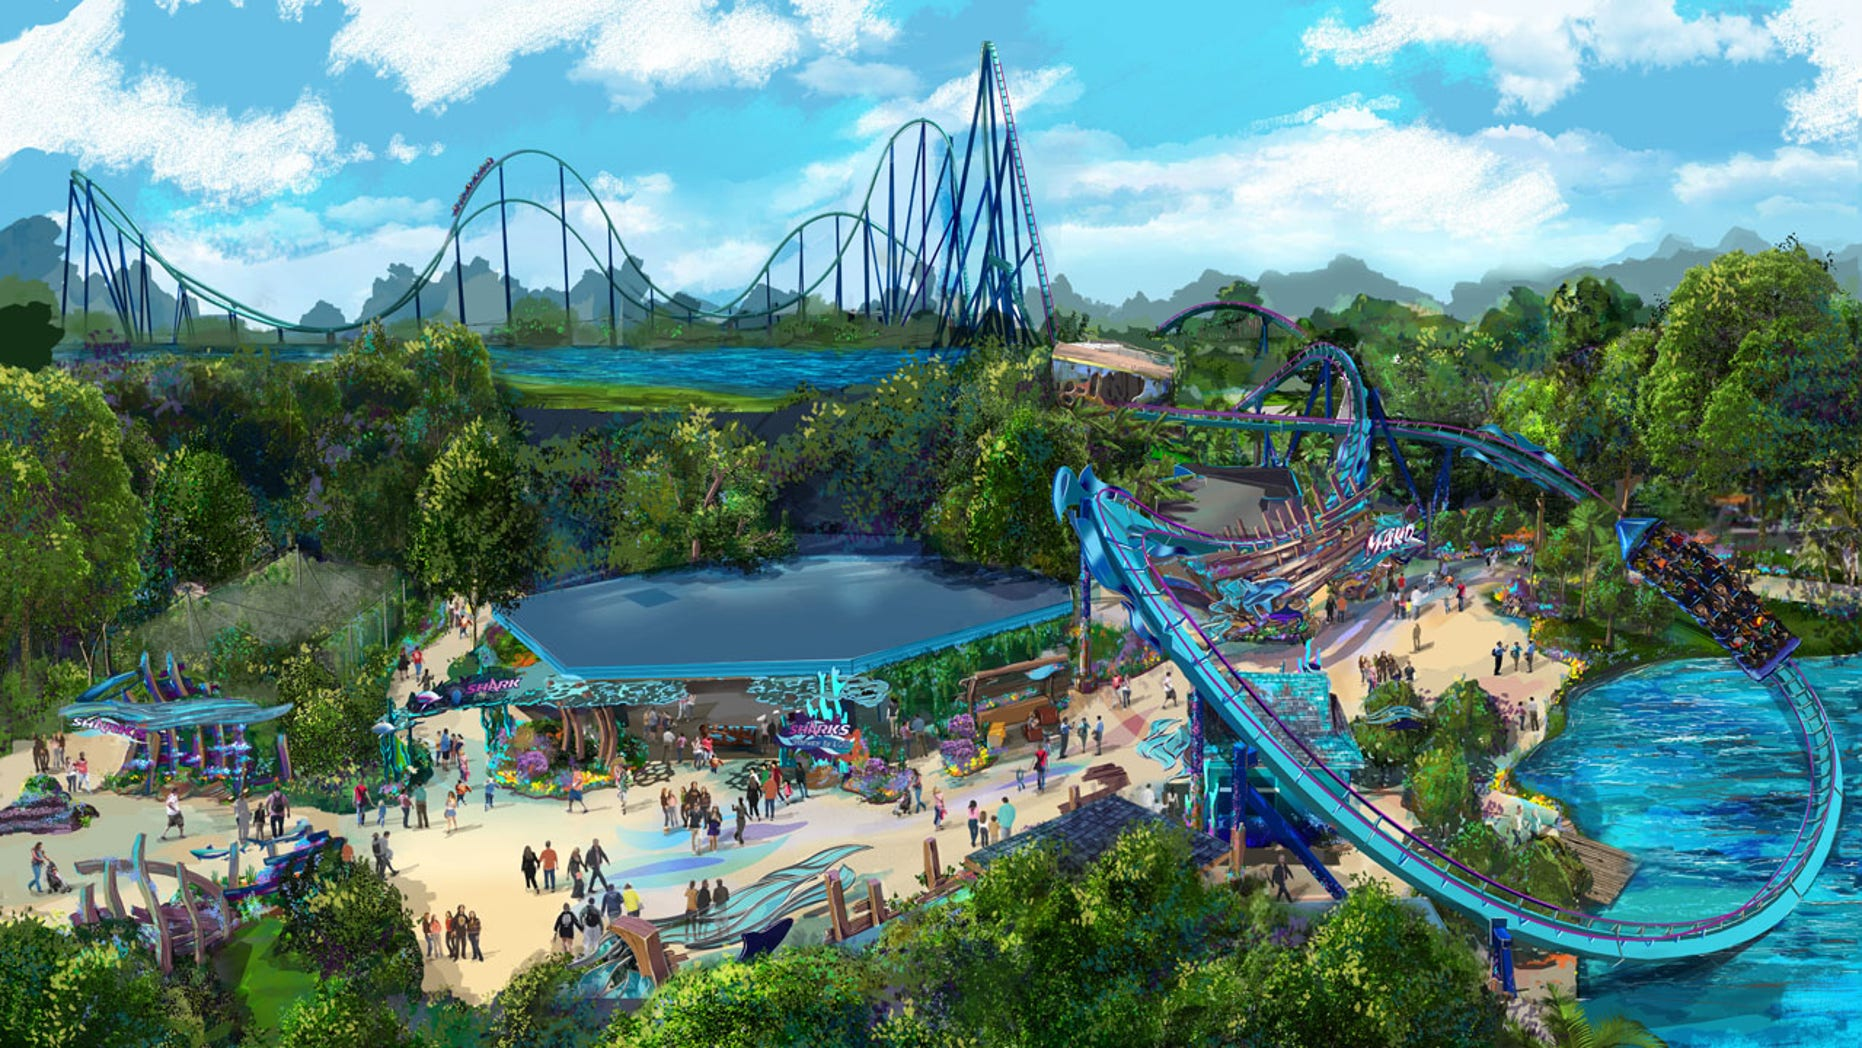 The new Mako coaster is set to open June 10.